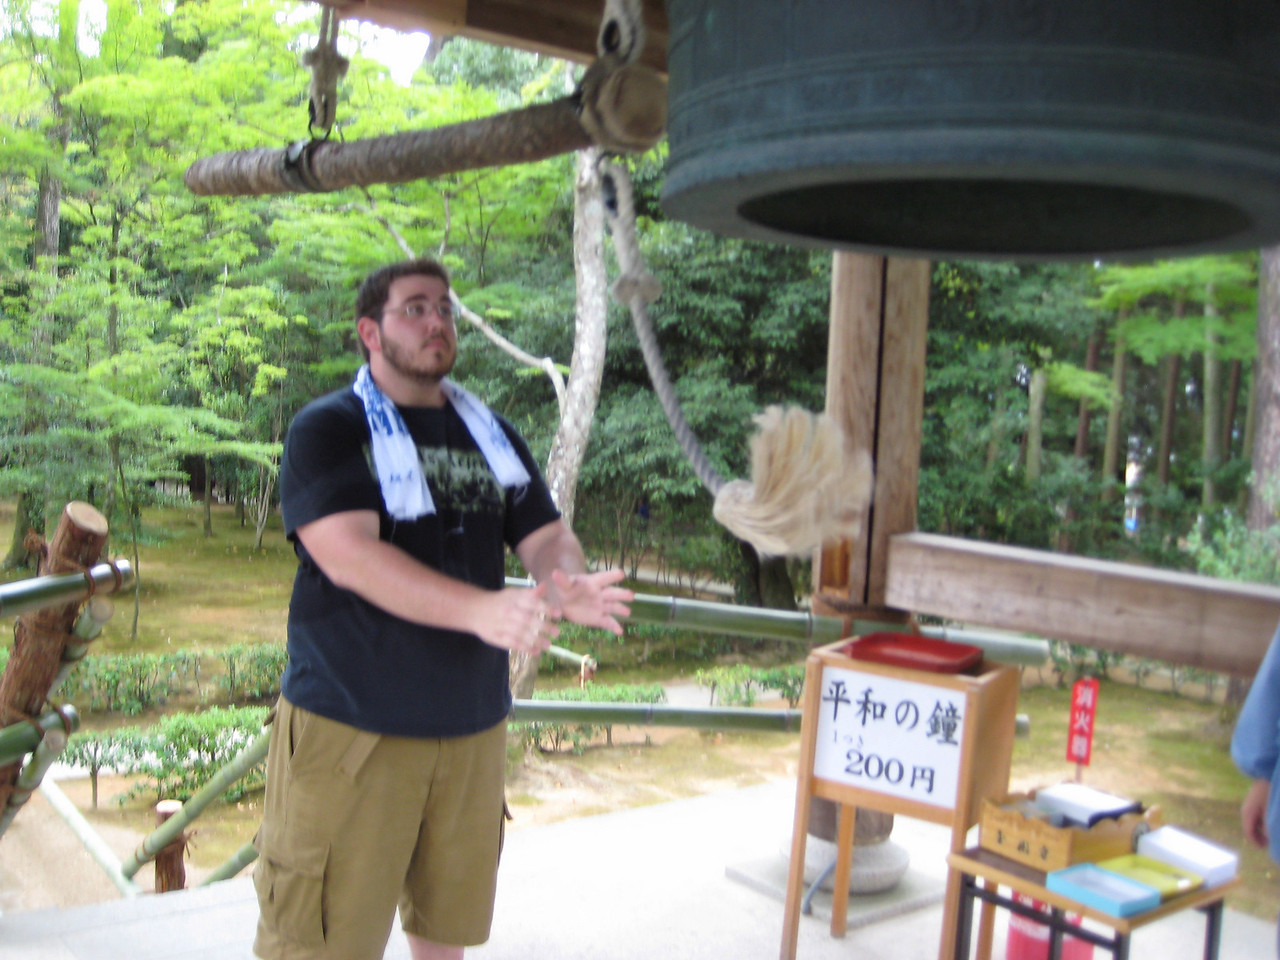 As you can see from the sign, they requested a 200 yen (about 2 dollars) donation to make your prayer. Following the attendant's instructions, Josh swung the rope and then released it just before the shaft struck this 800 year old bell.